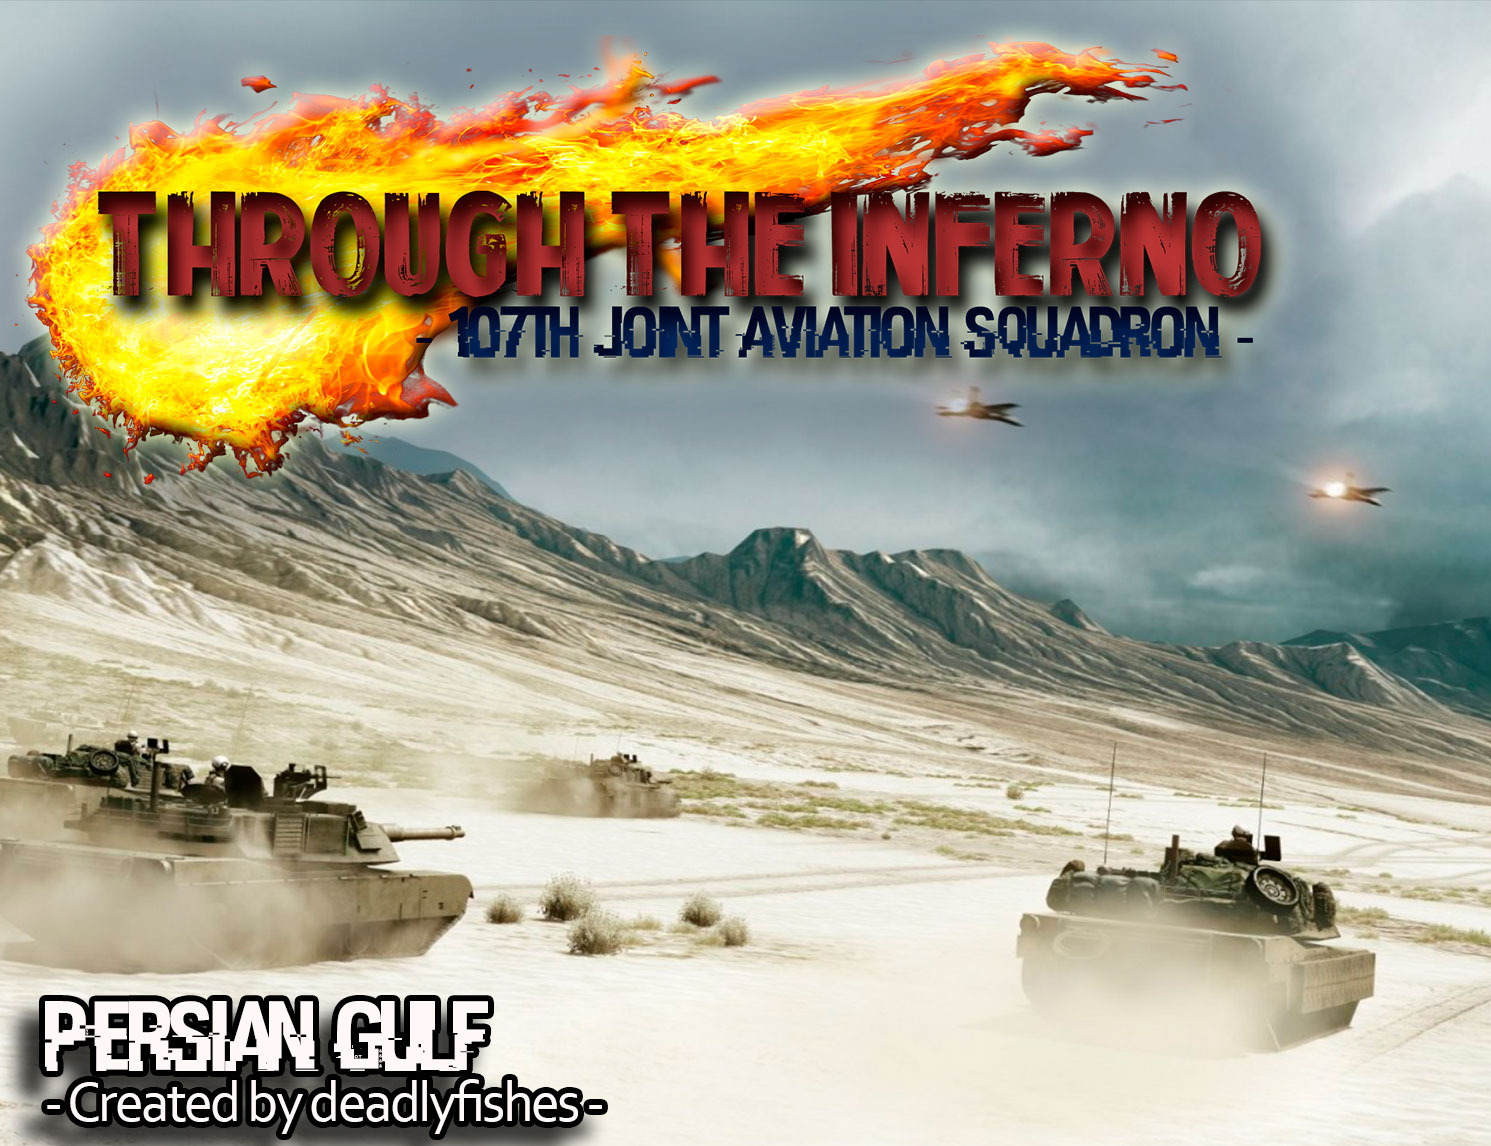 Through the inferno persian gulf map released for dcs world 252 additionally weve launched our singleplayer tti persian gulf mission along with a few great updates for the existing tti singleplayer maps gumiabroncs Choice Image